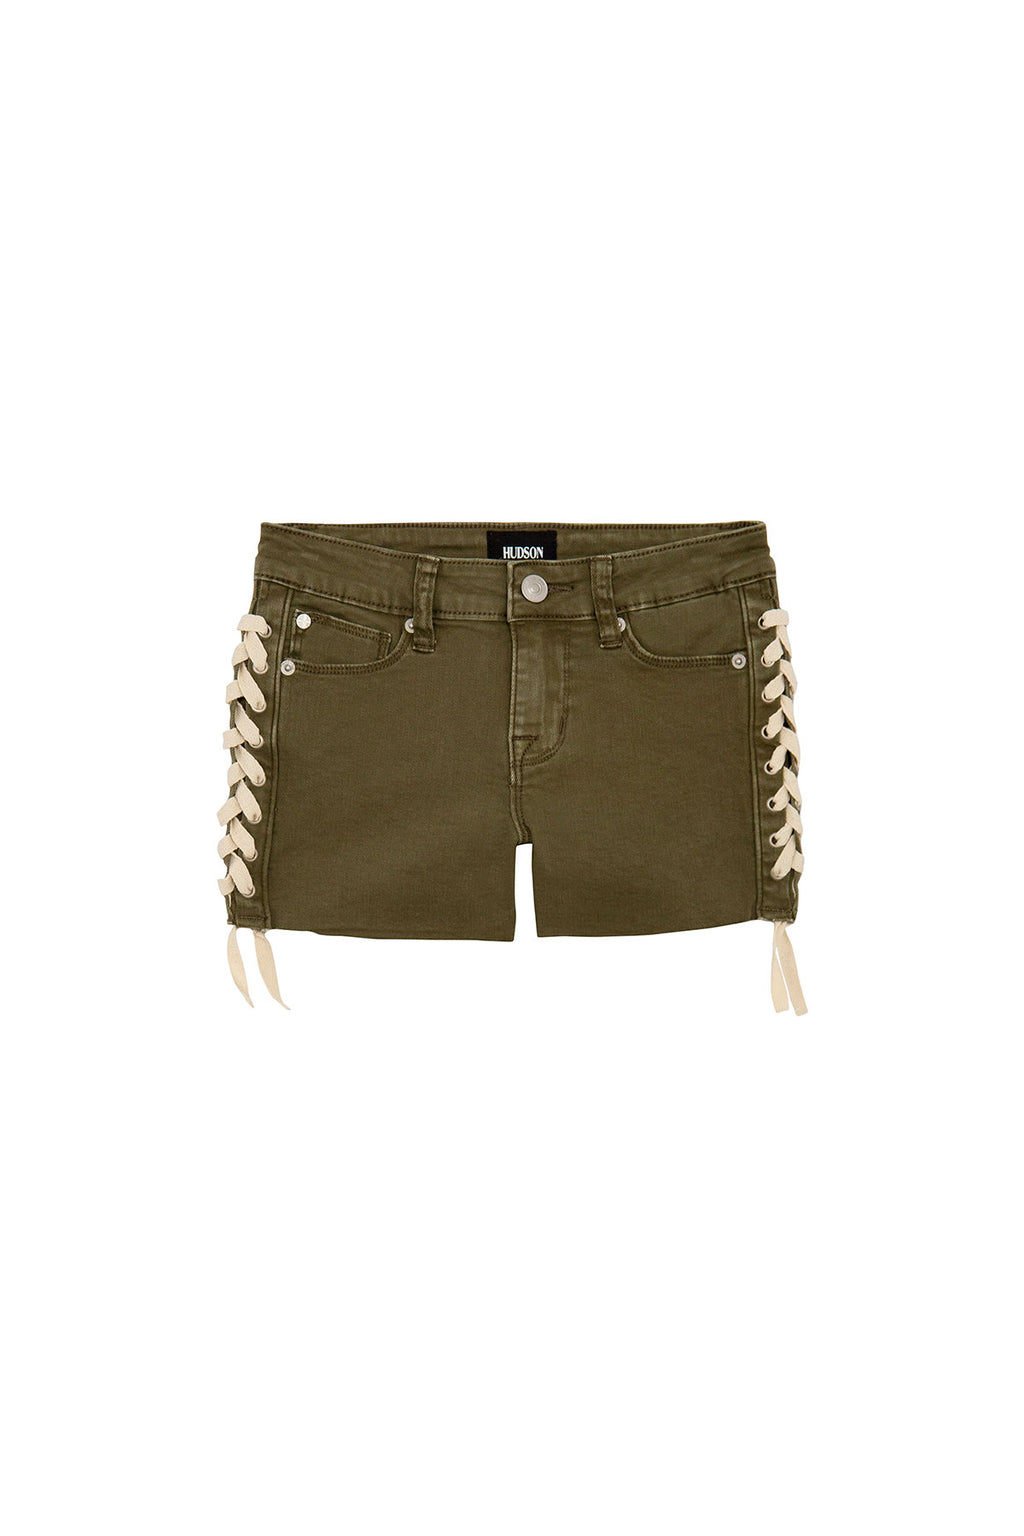 GIRLS BAILEY SHORT, SIZES 7-16 - ARMY GREEN - Image 1